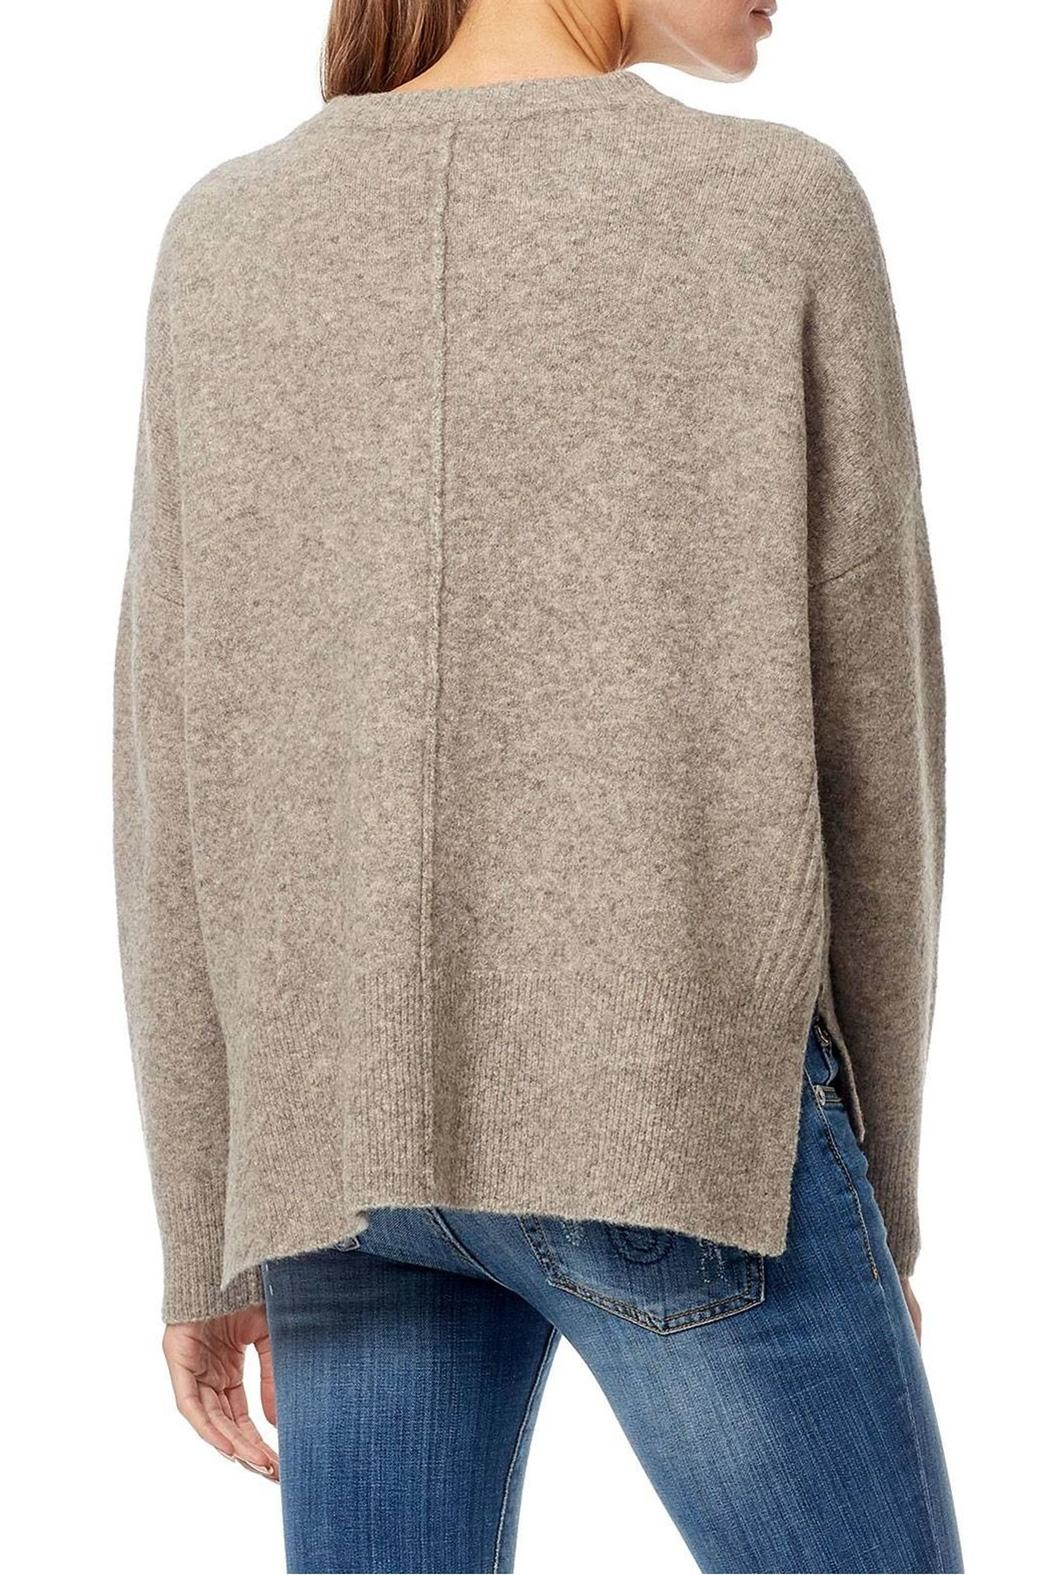 360 Cashmere Hanna Crew Neck Top - Side Cropped Image